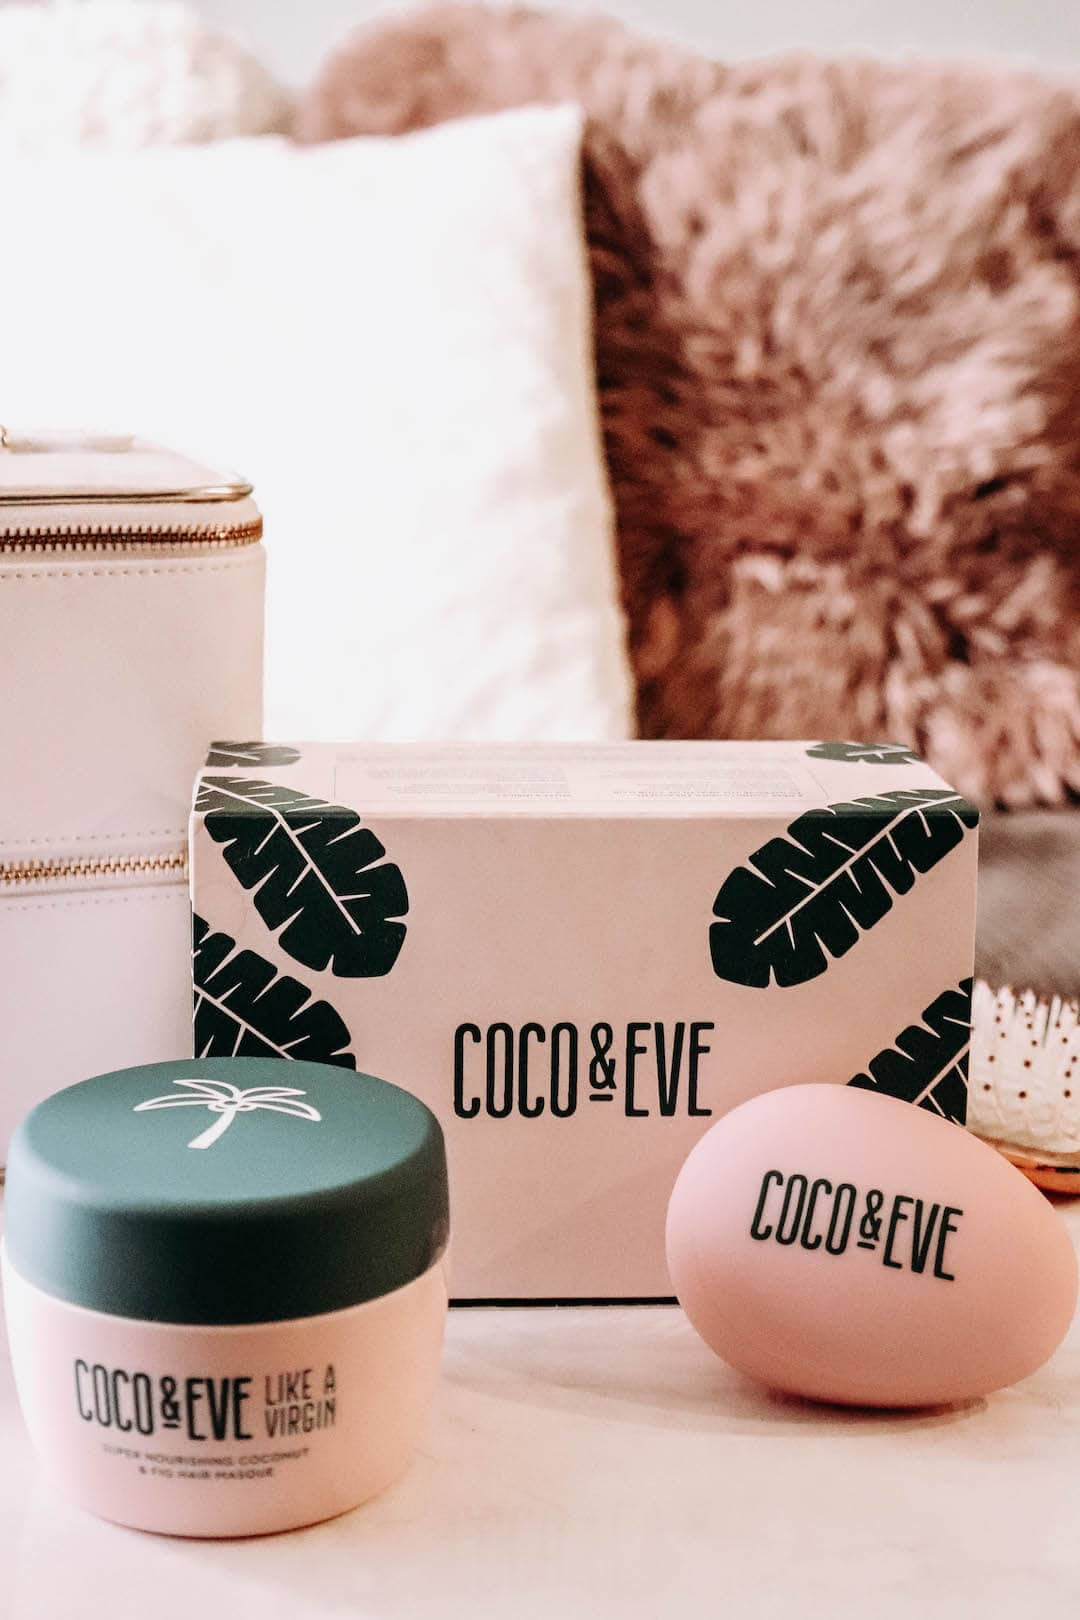 coco-and-eve-like-a-virgin-coconut-and-fig-hair-mask-review